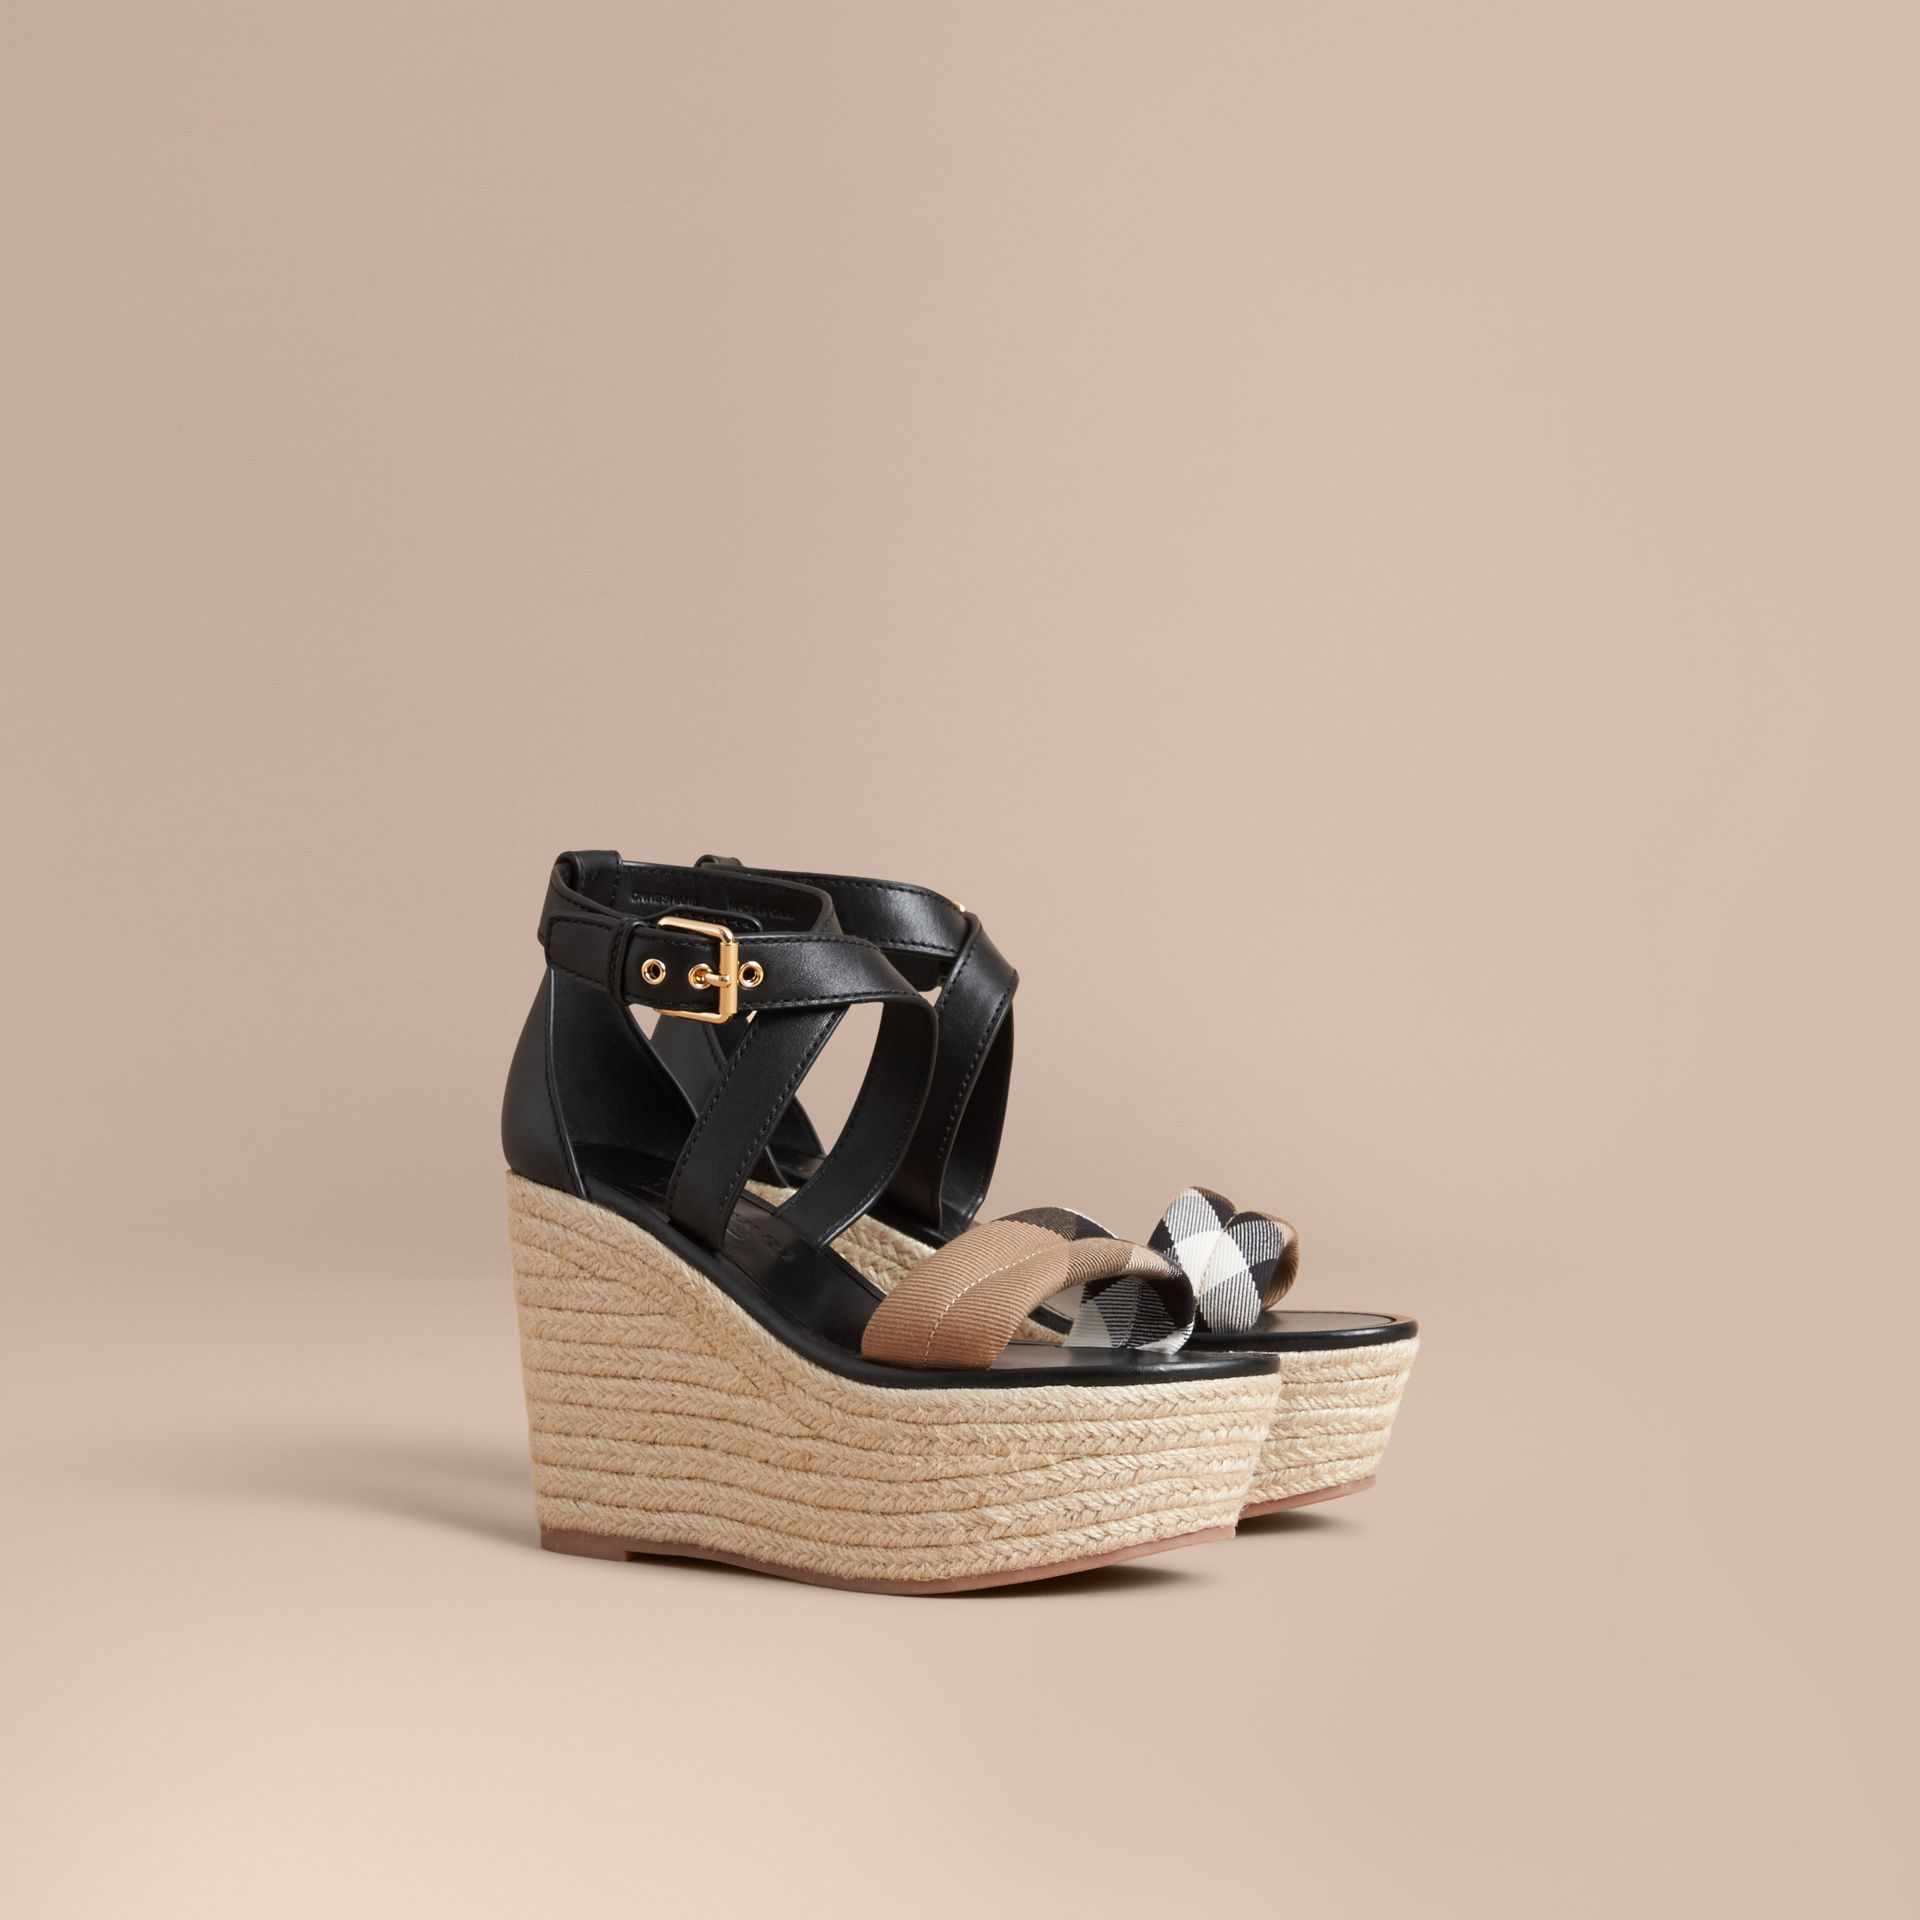 Leather and House Check Platform Espadrille Wedge Sandals in Black - Women | Burberry Hong Kong - gallery image 1